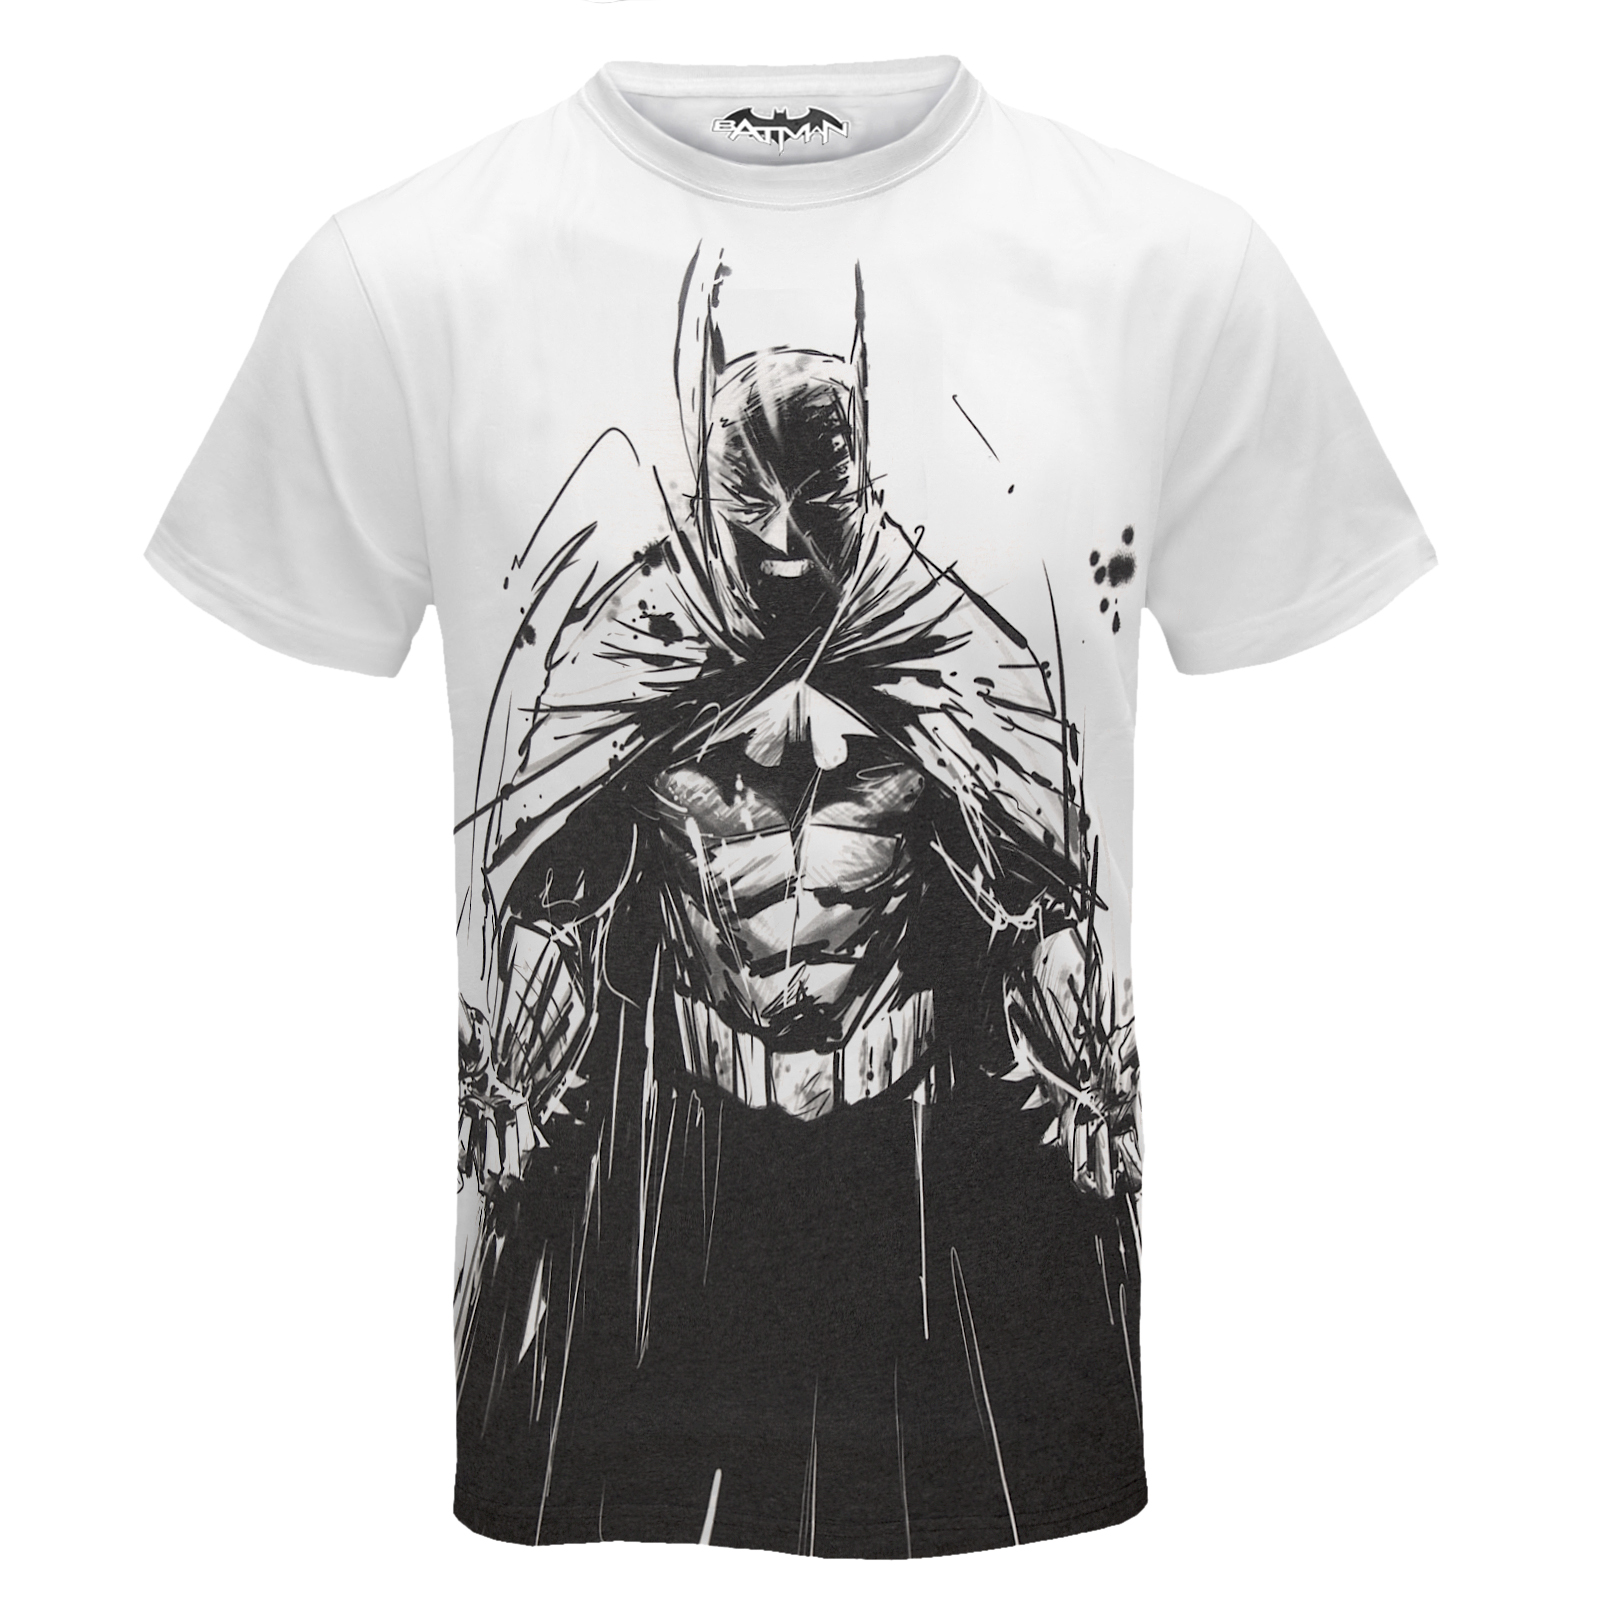 T shirt white ebay - Dc Comics Batman Official Gift Mens Sublimation T